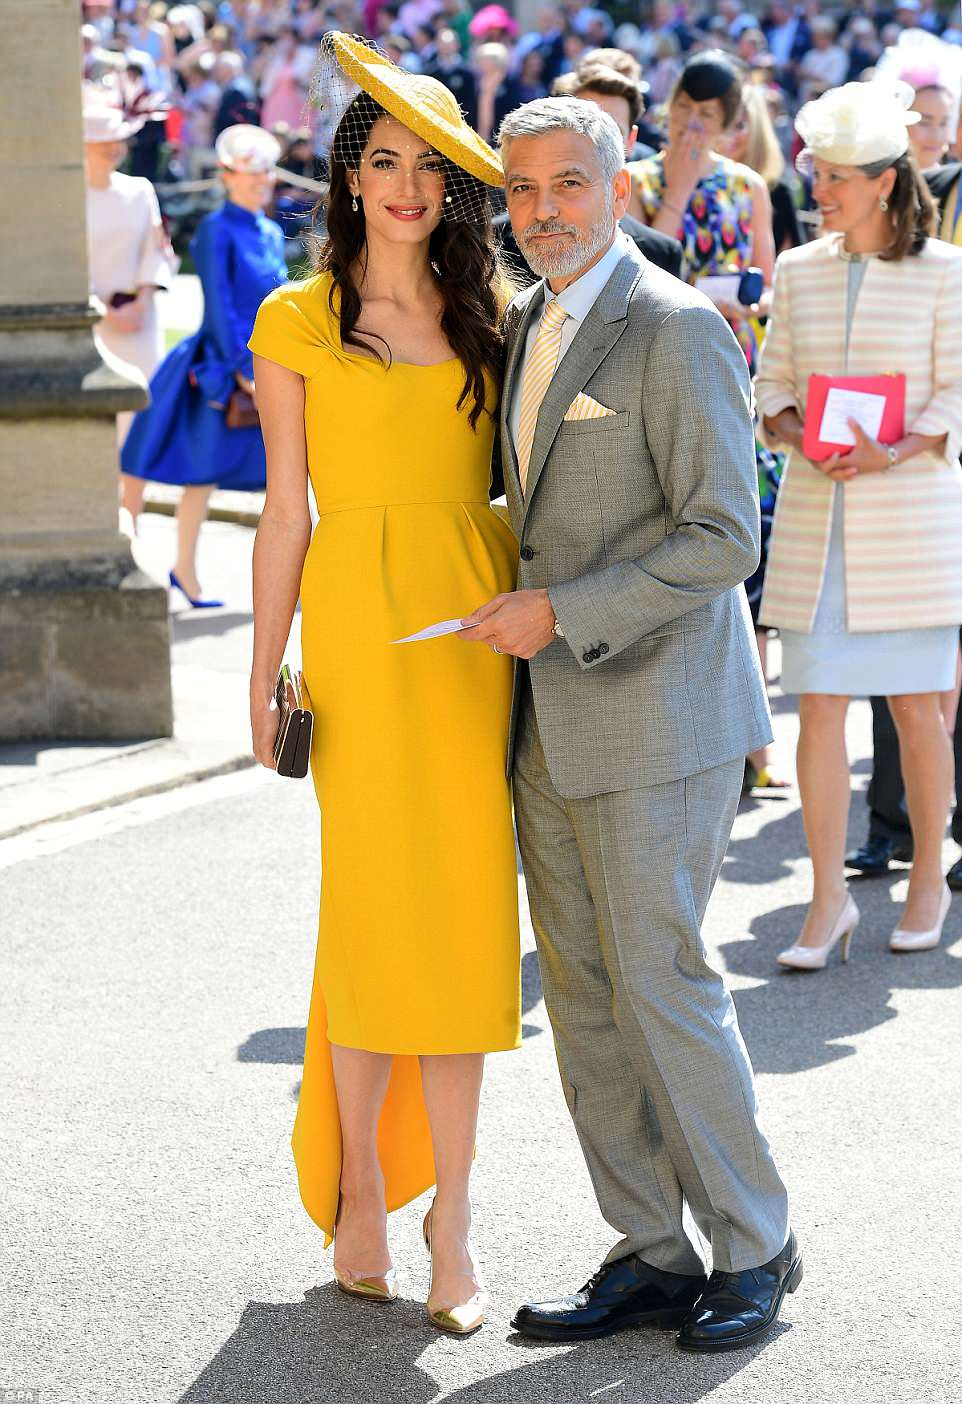 George and Amal Clooney at the Royal Wedding - Page 2 4C6BD31900000578-5747477-image-a-143_1526723443015